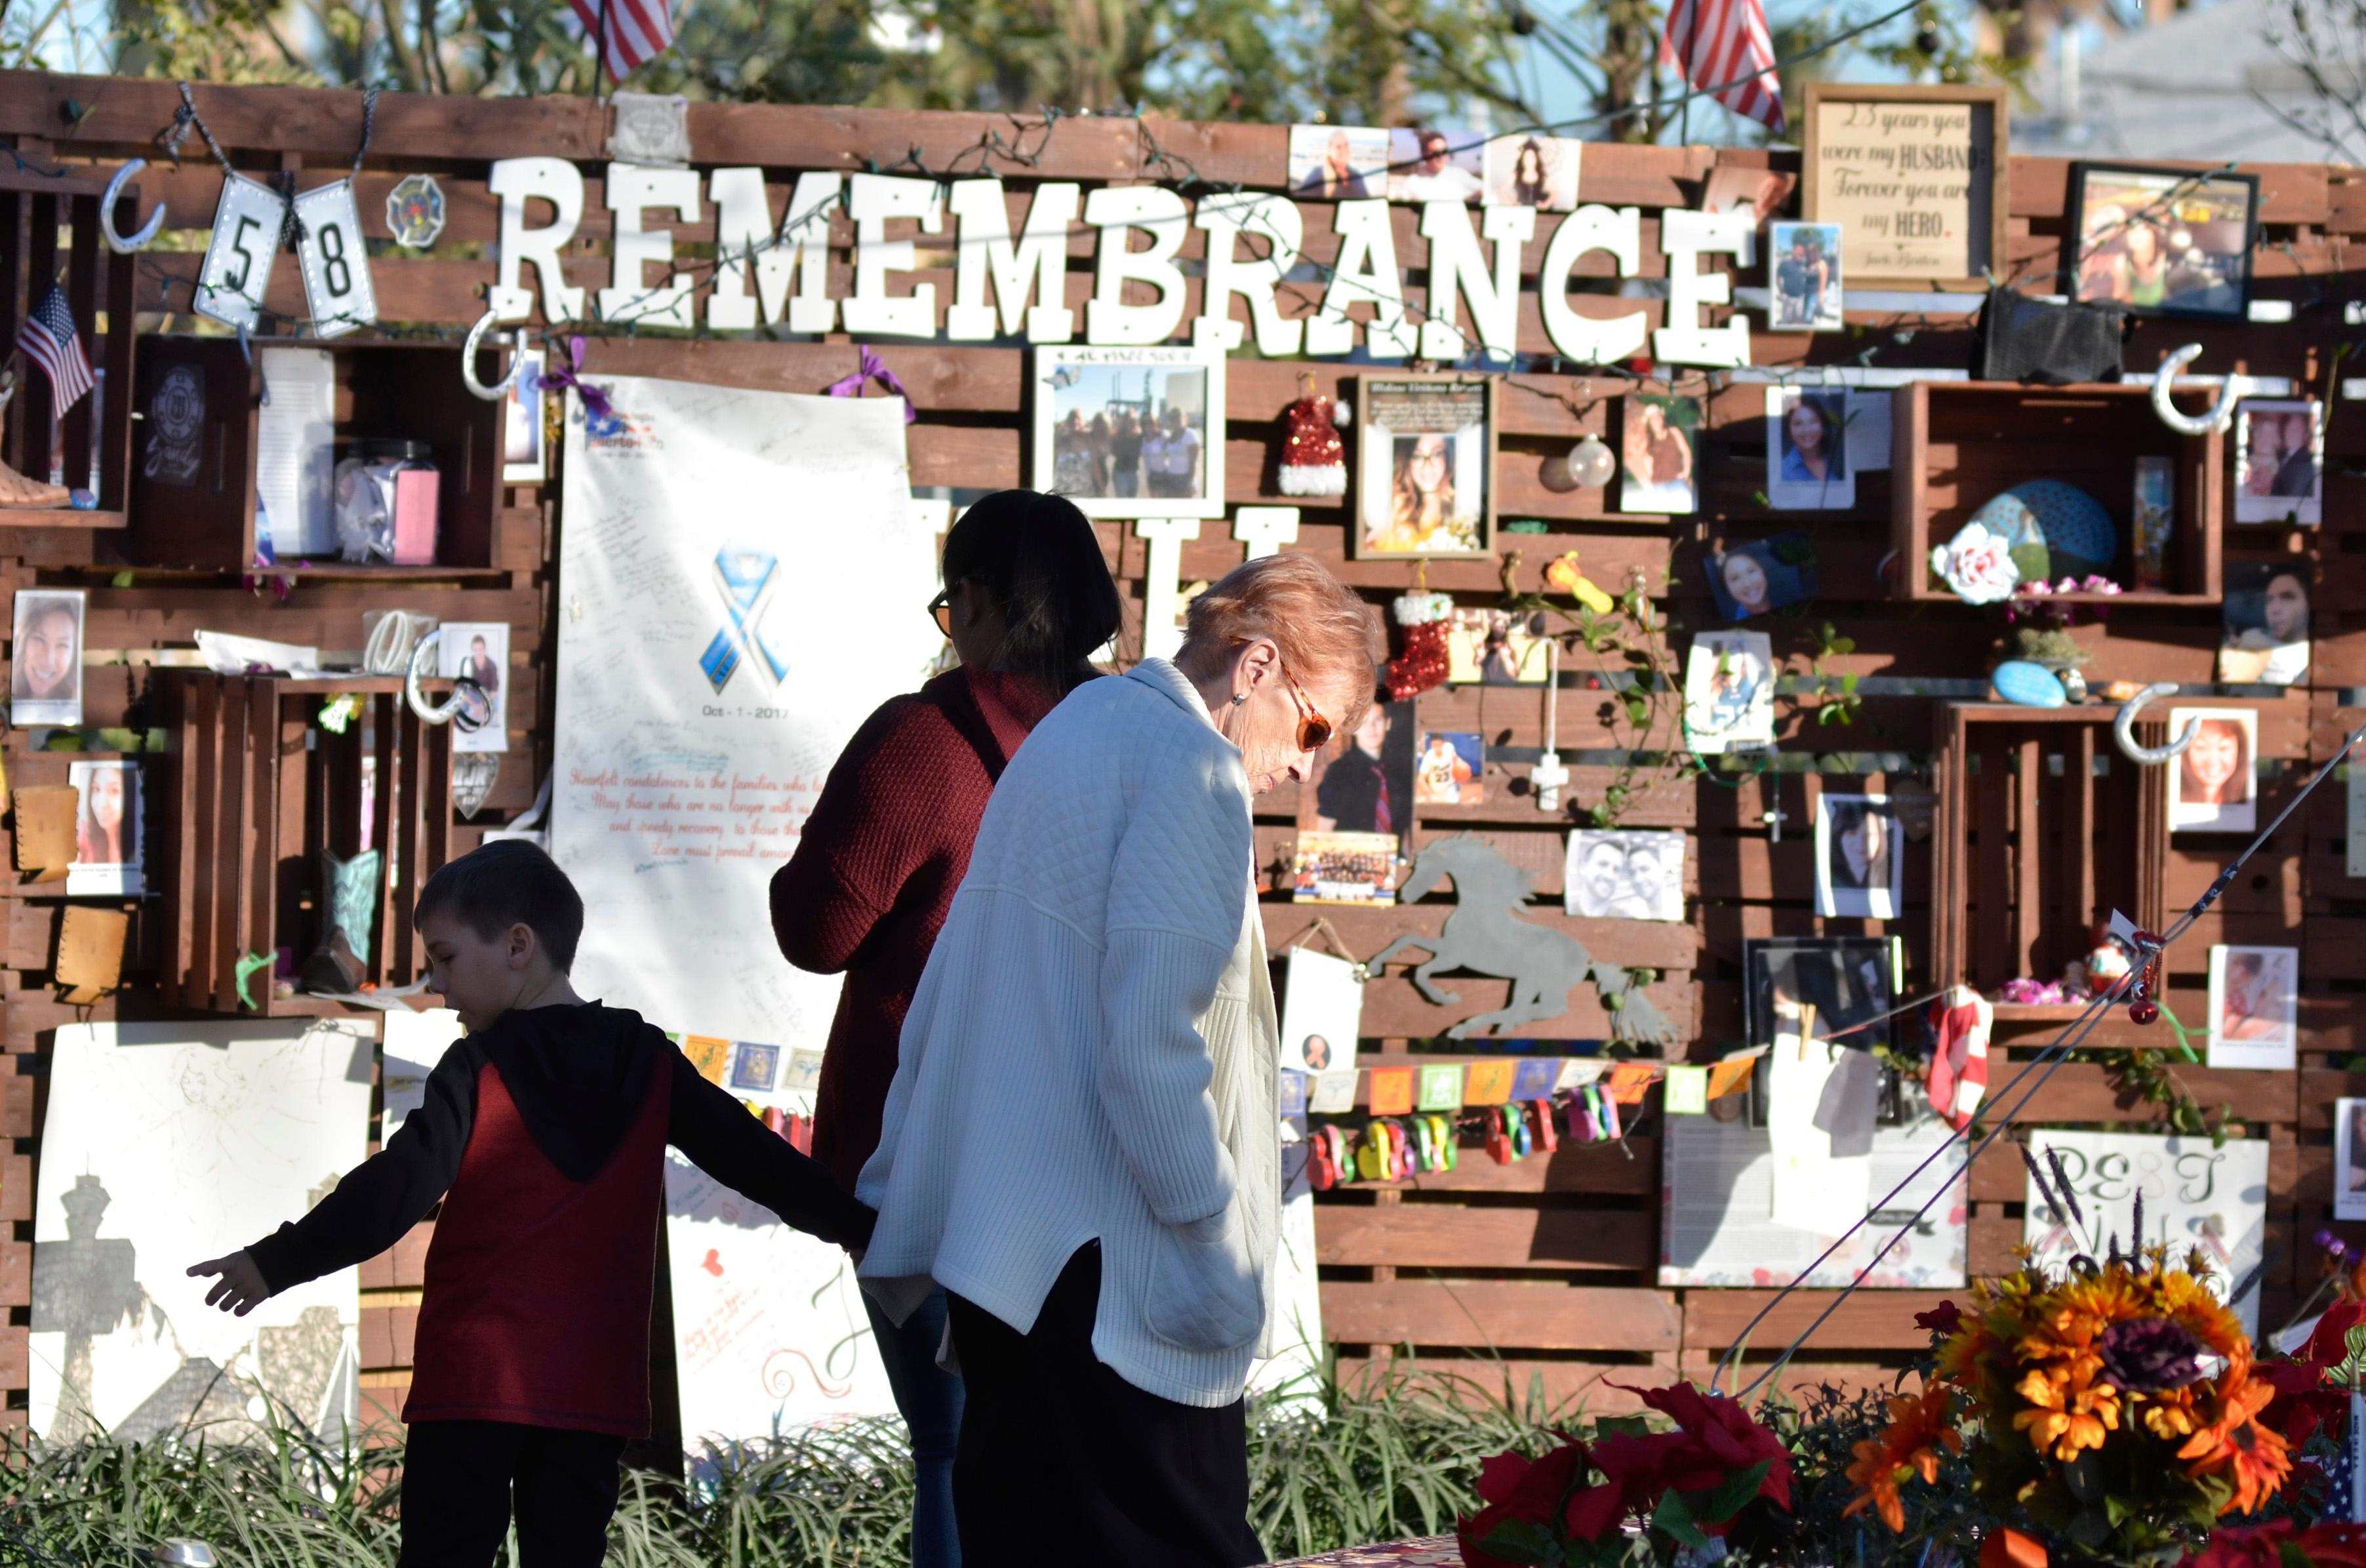 Visitors to the Remembrance Wall are shown in the Community Healing Garden at 1015 S. Casino Center Blvd. in Las Vegas on Tuesday, Dec. 12, 2017. CREDIT: Bill Hughes/Las Vegas News Bureau